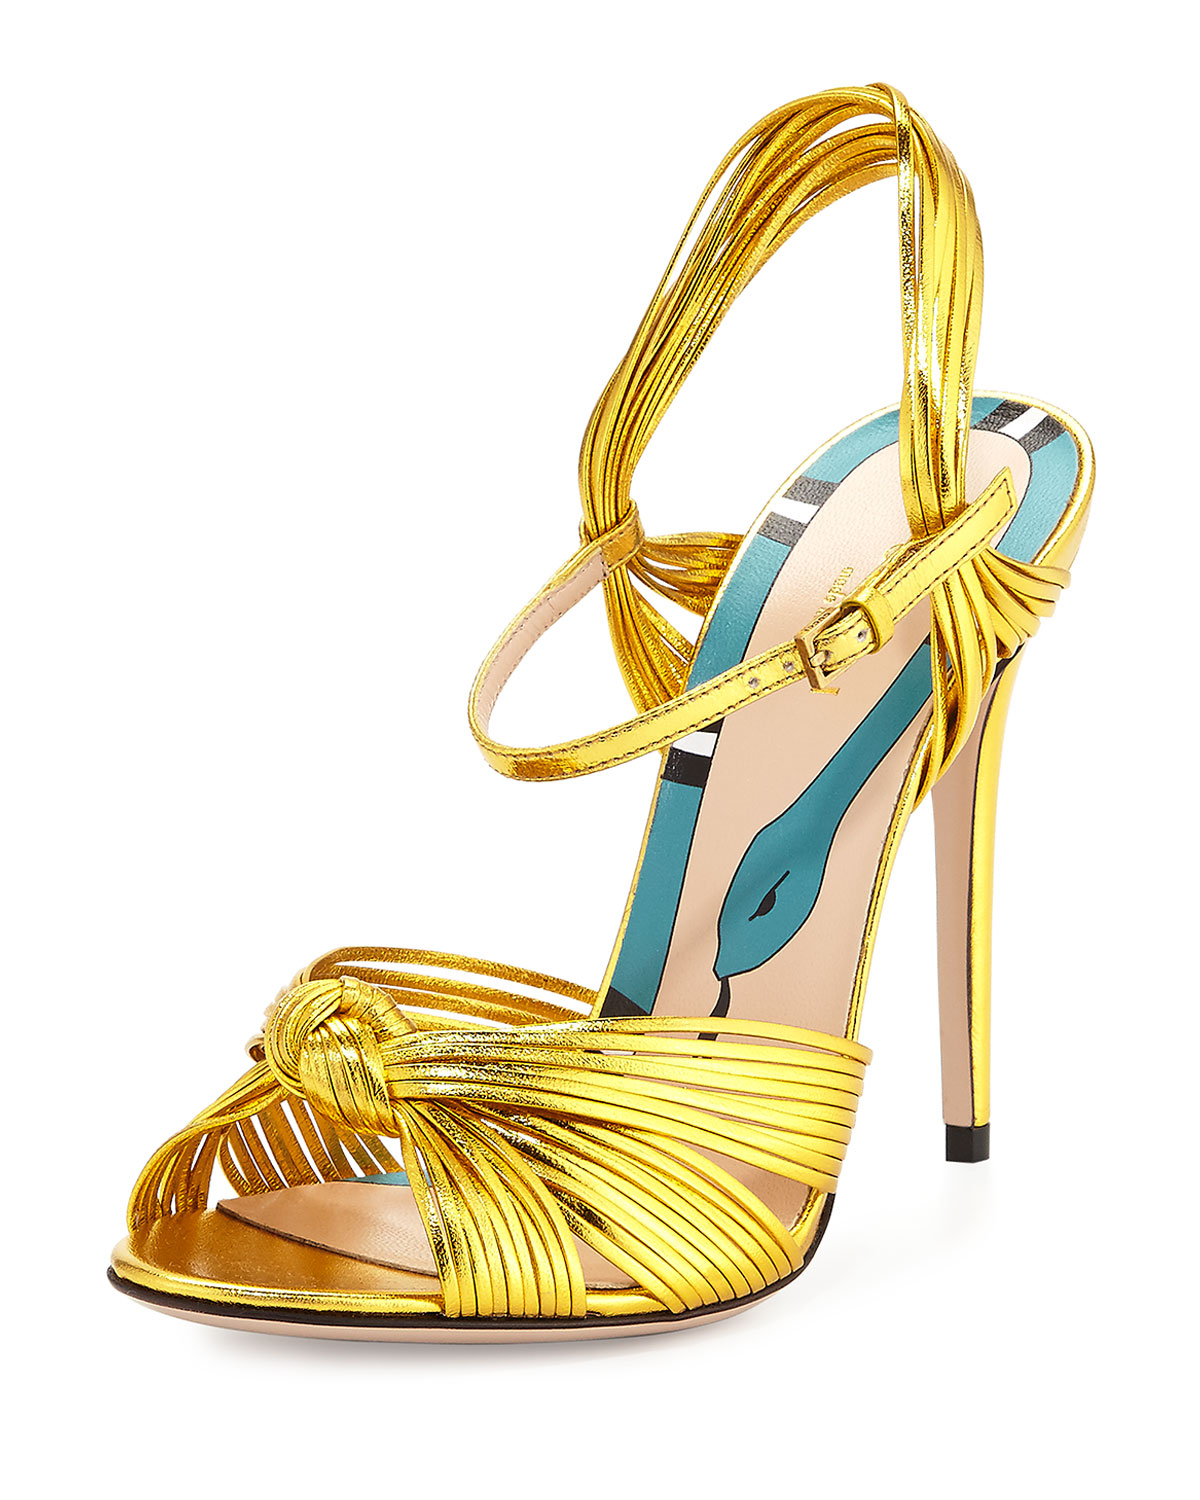 7994738b75f Gucci Allie Knotted Strappy Sandal